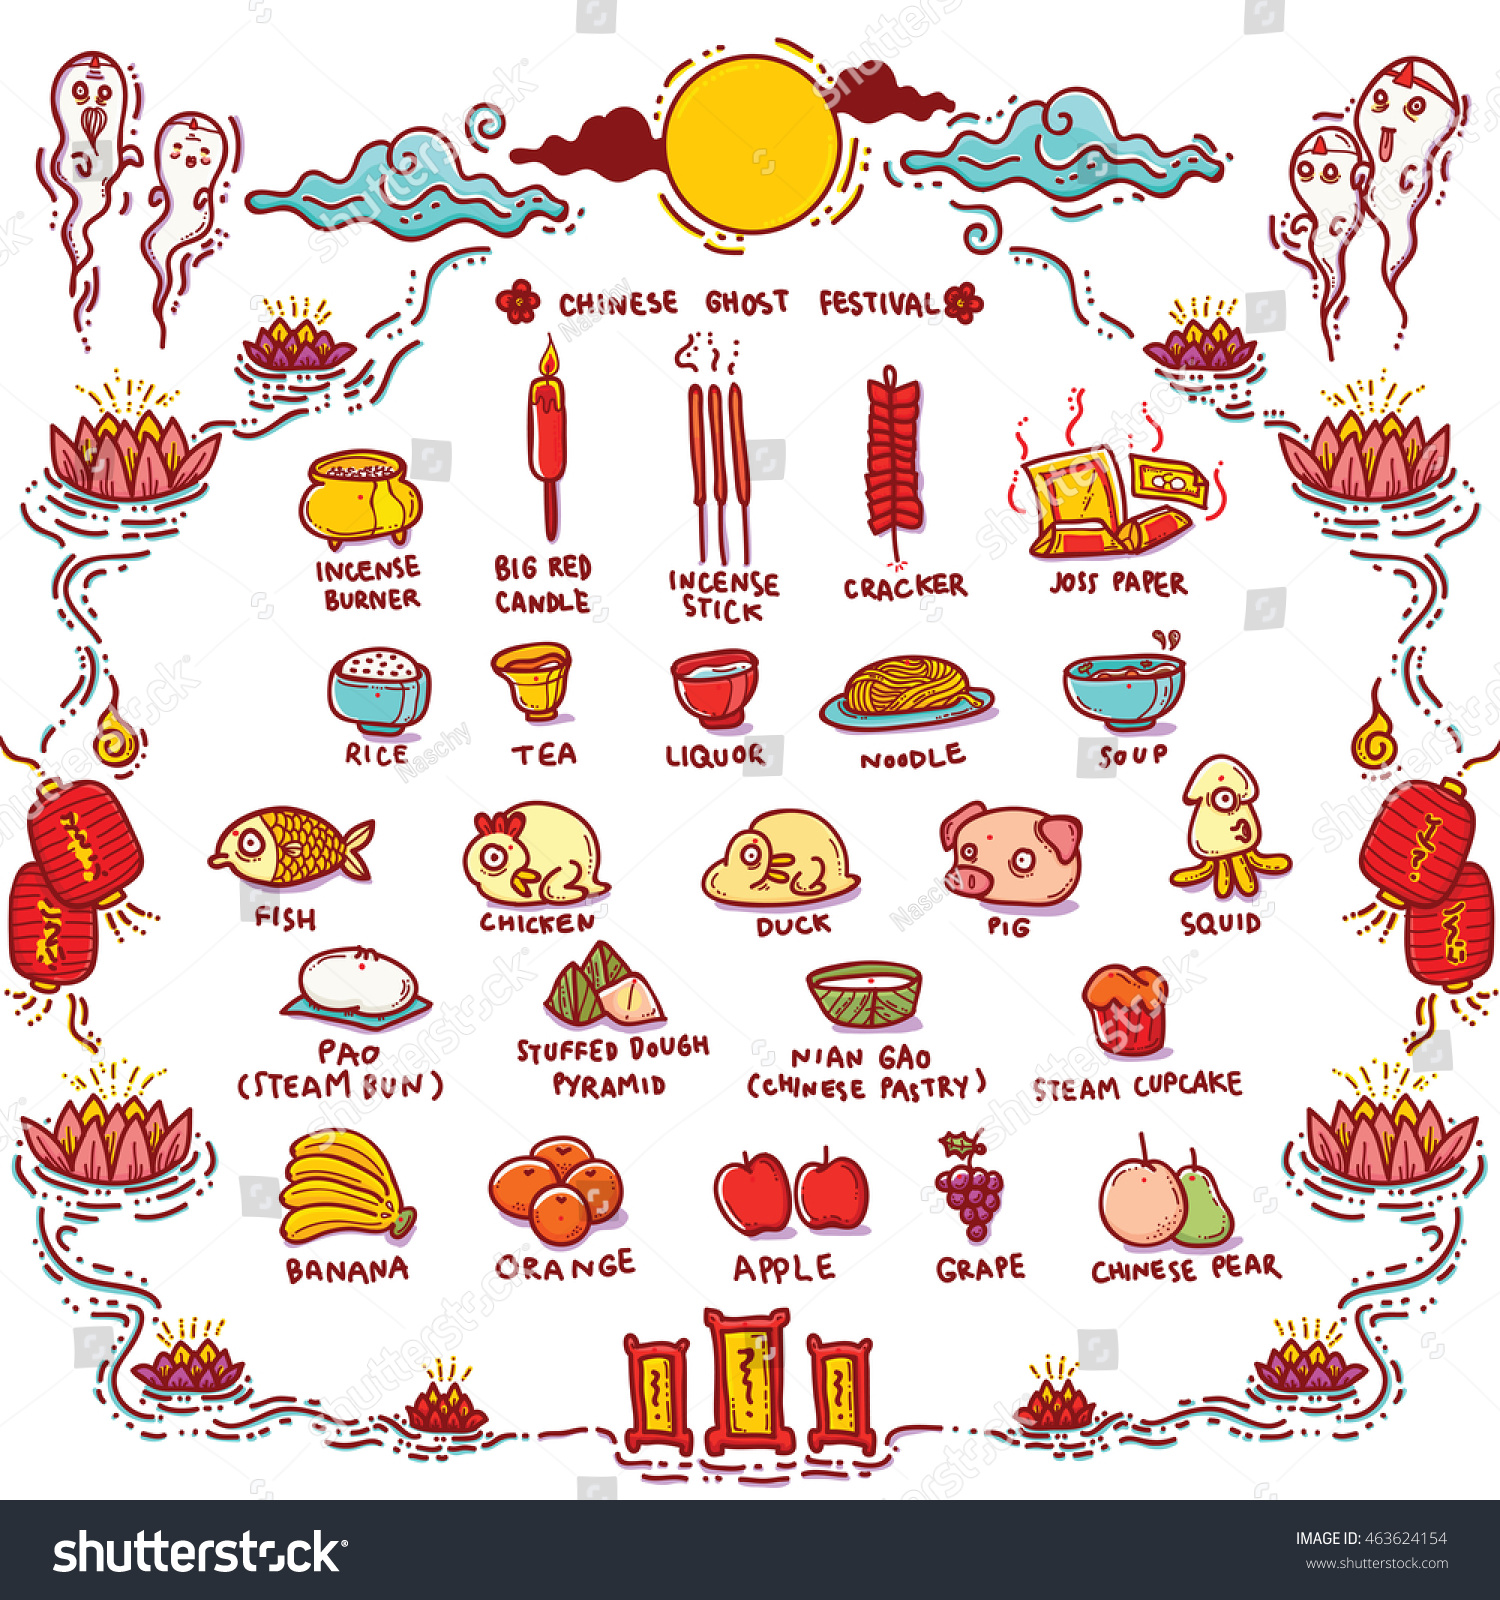 Hungry Ghost Festival Food Offerings